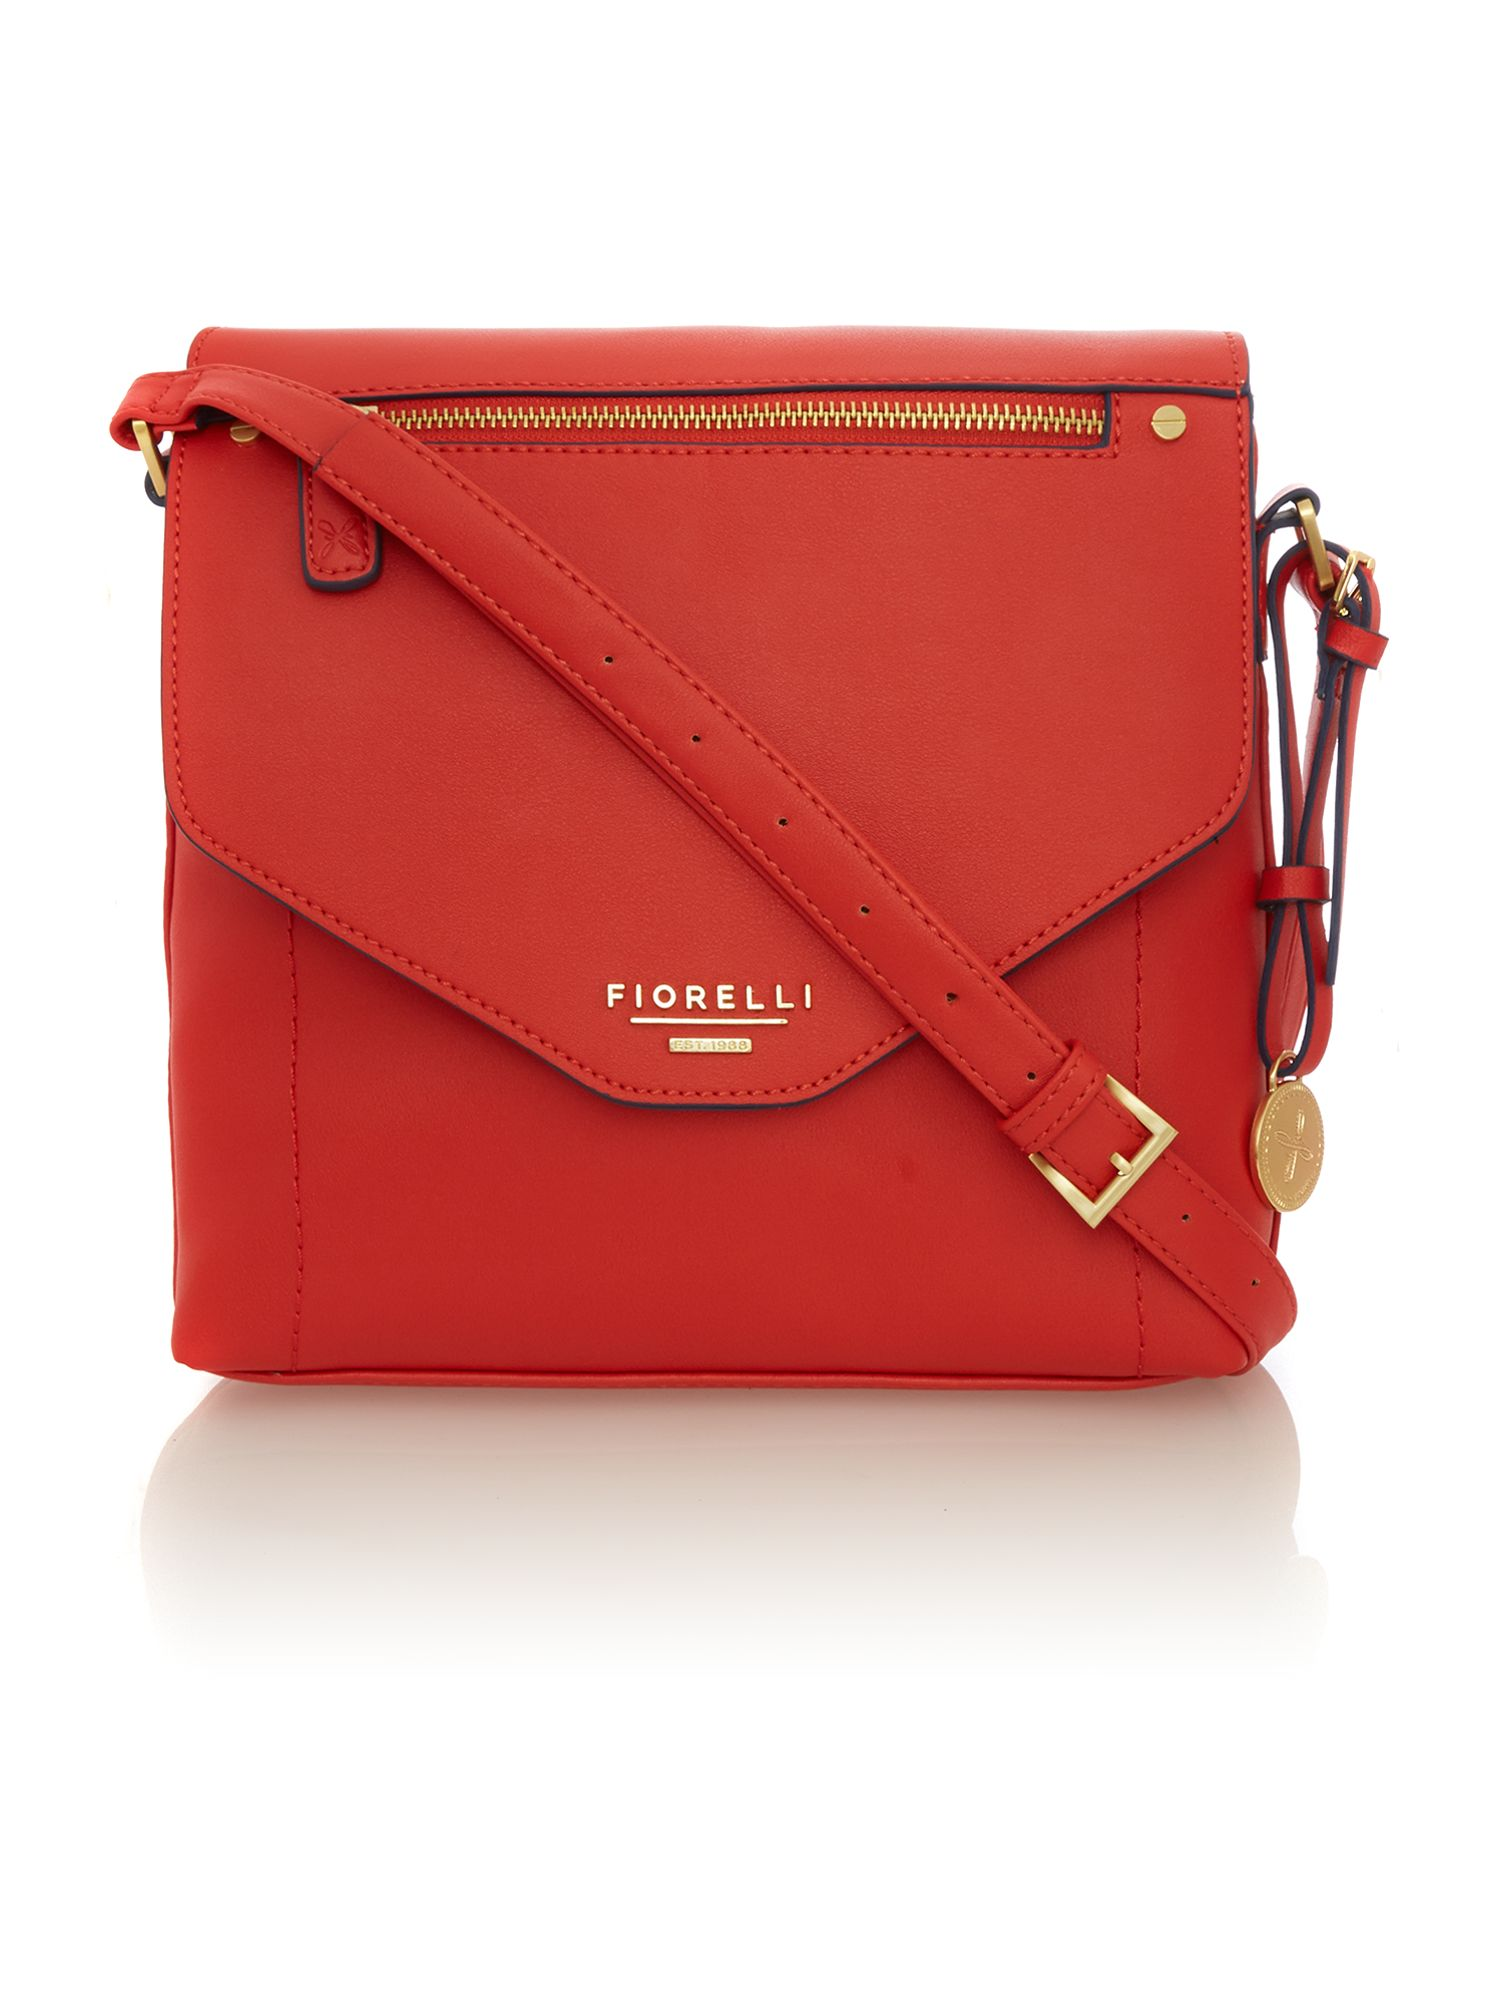 Chloe red crossbody bag